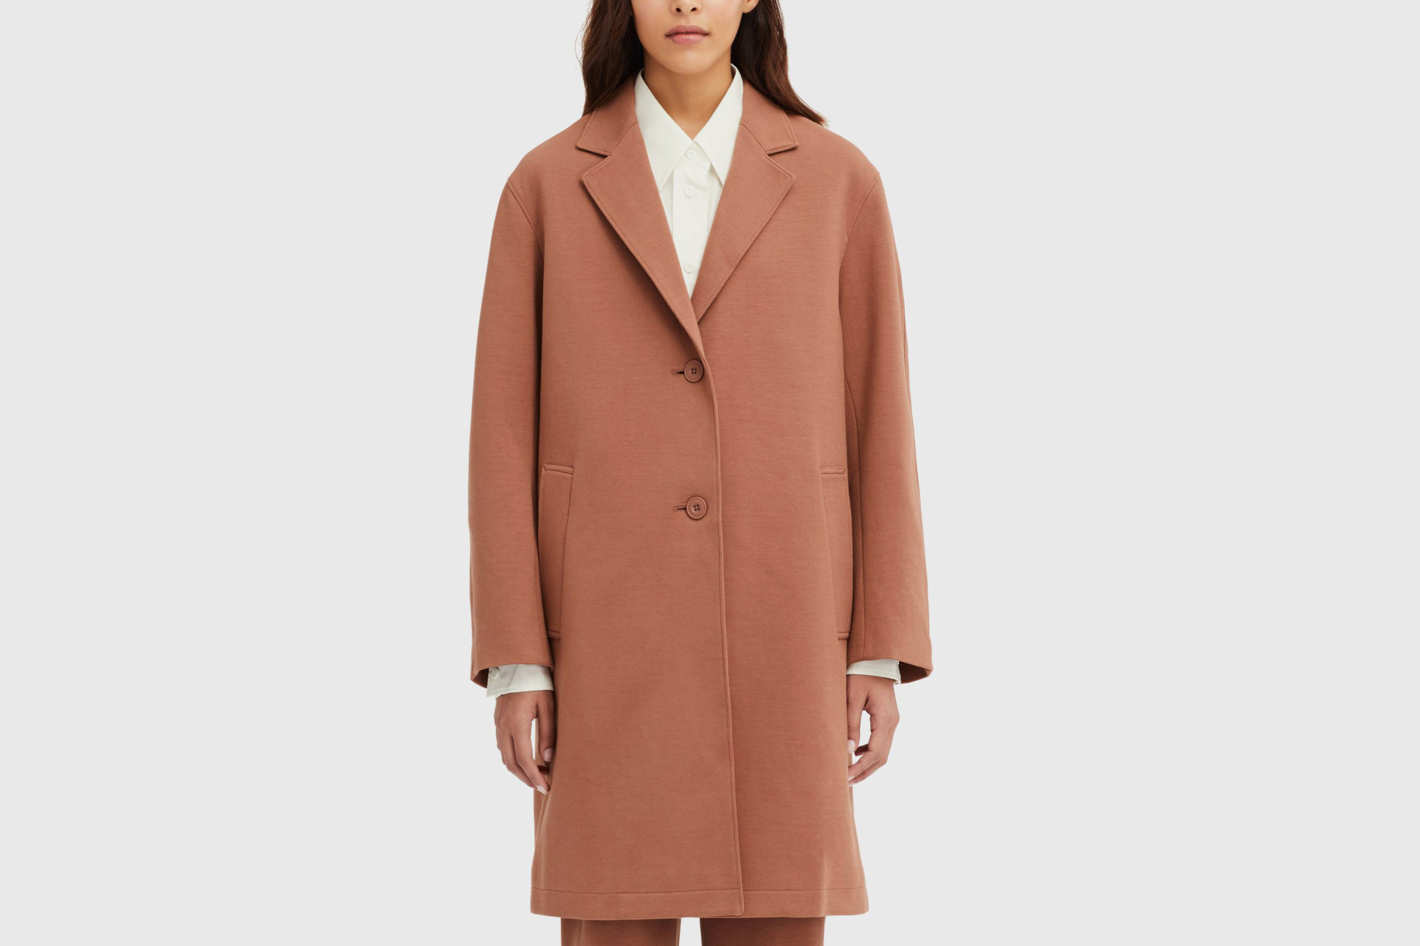 Women U Double Face Coat